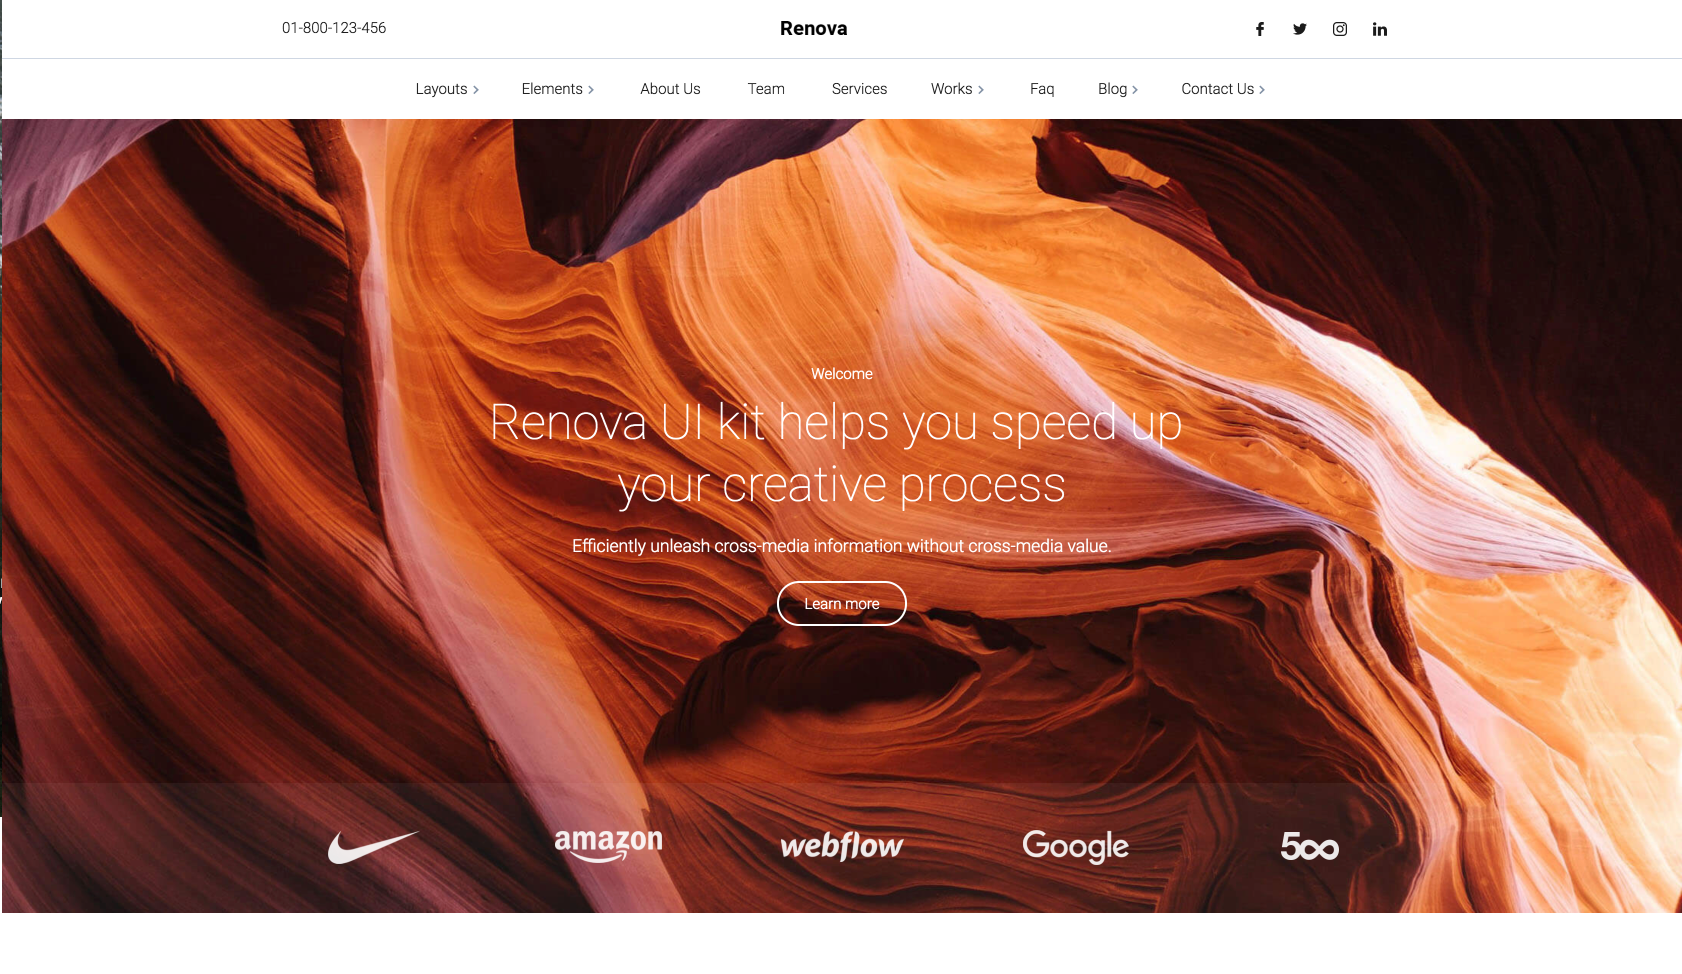 Homepage for Webflow template called Renova.